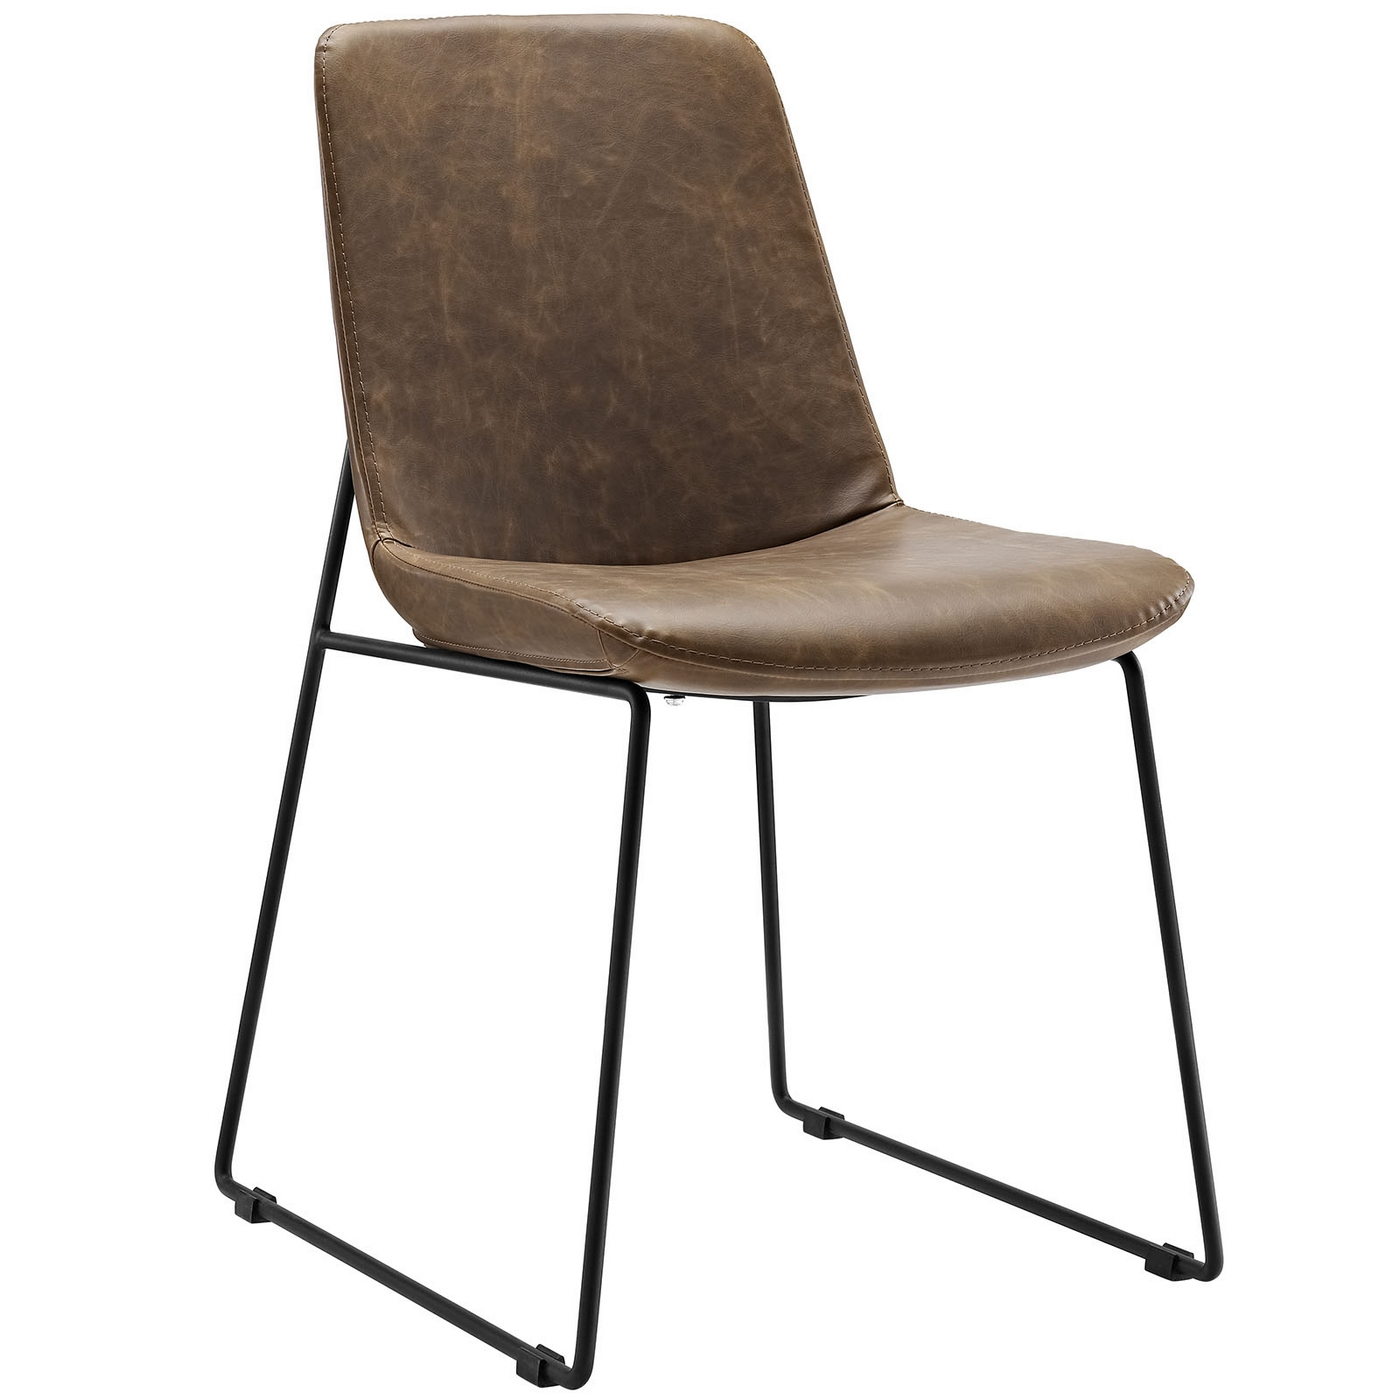 Invite Modernistic Padded Faux Leather Side Chair With